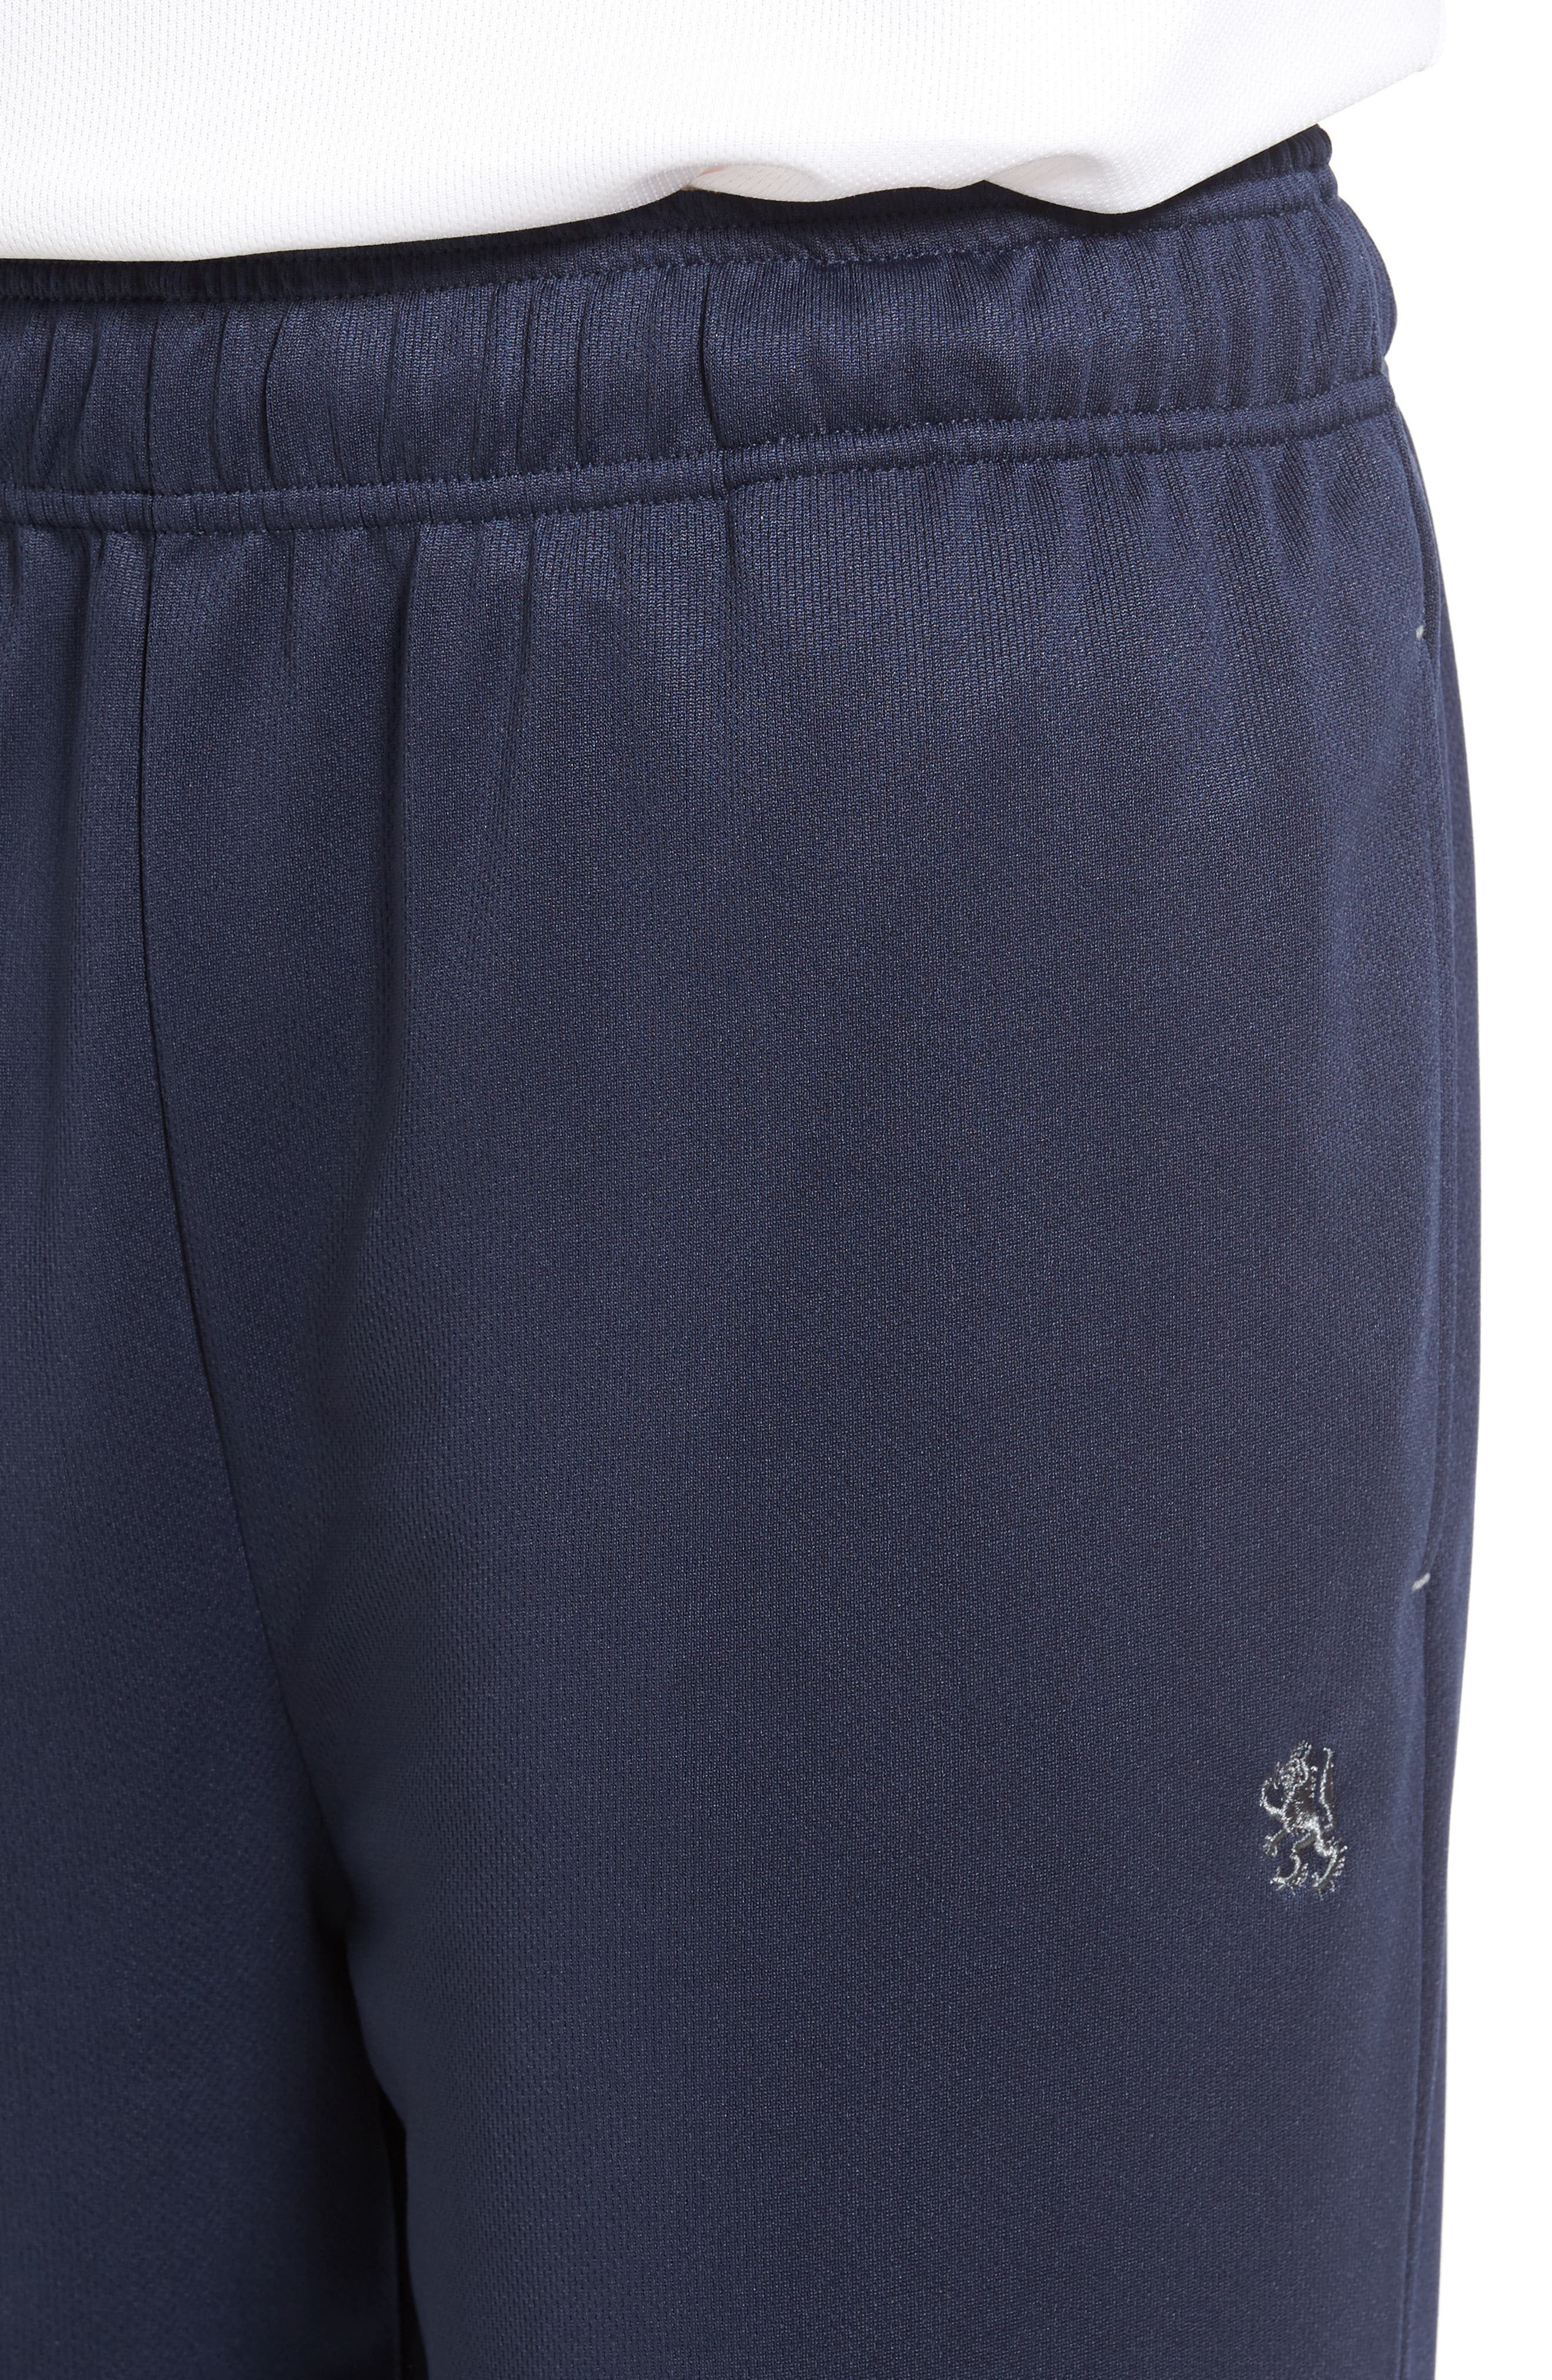 Work Out Lounge Pants,                             Alternate thumbnail 4, color,                             Navy